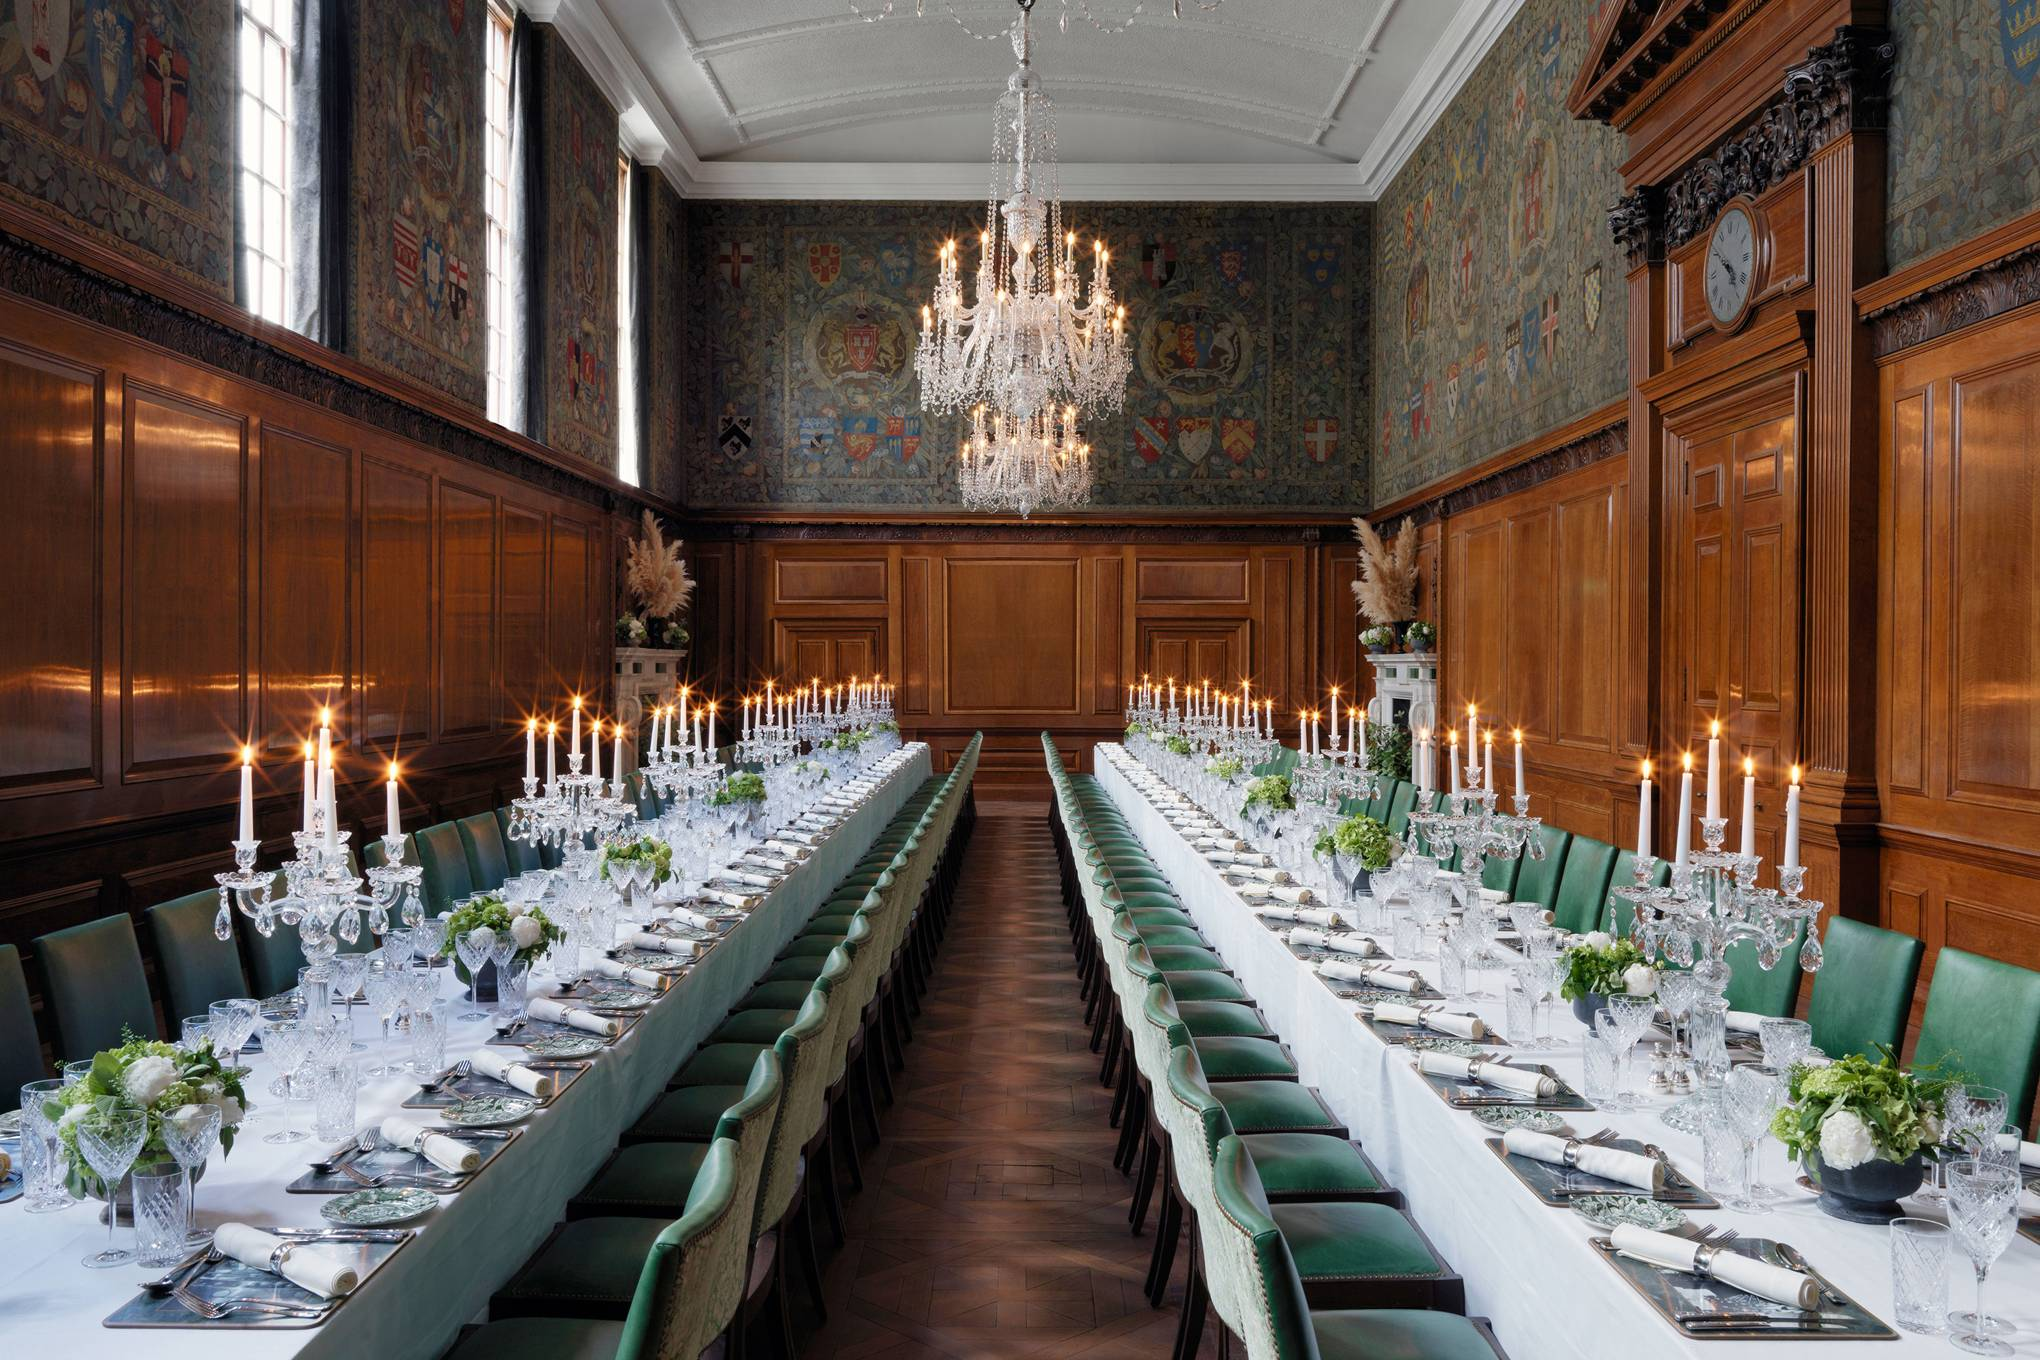 The 14 best private dining rooms in London